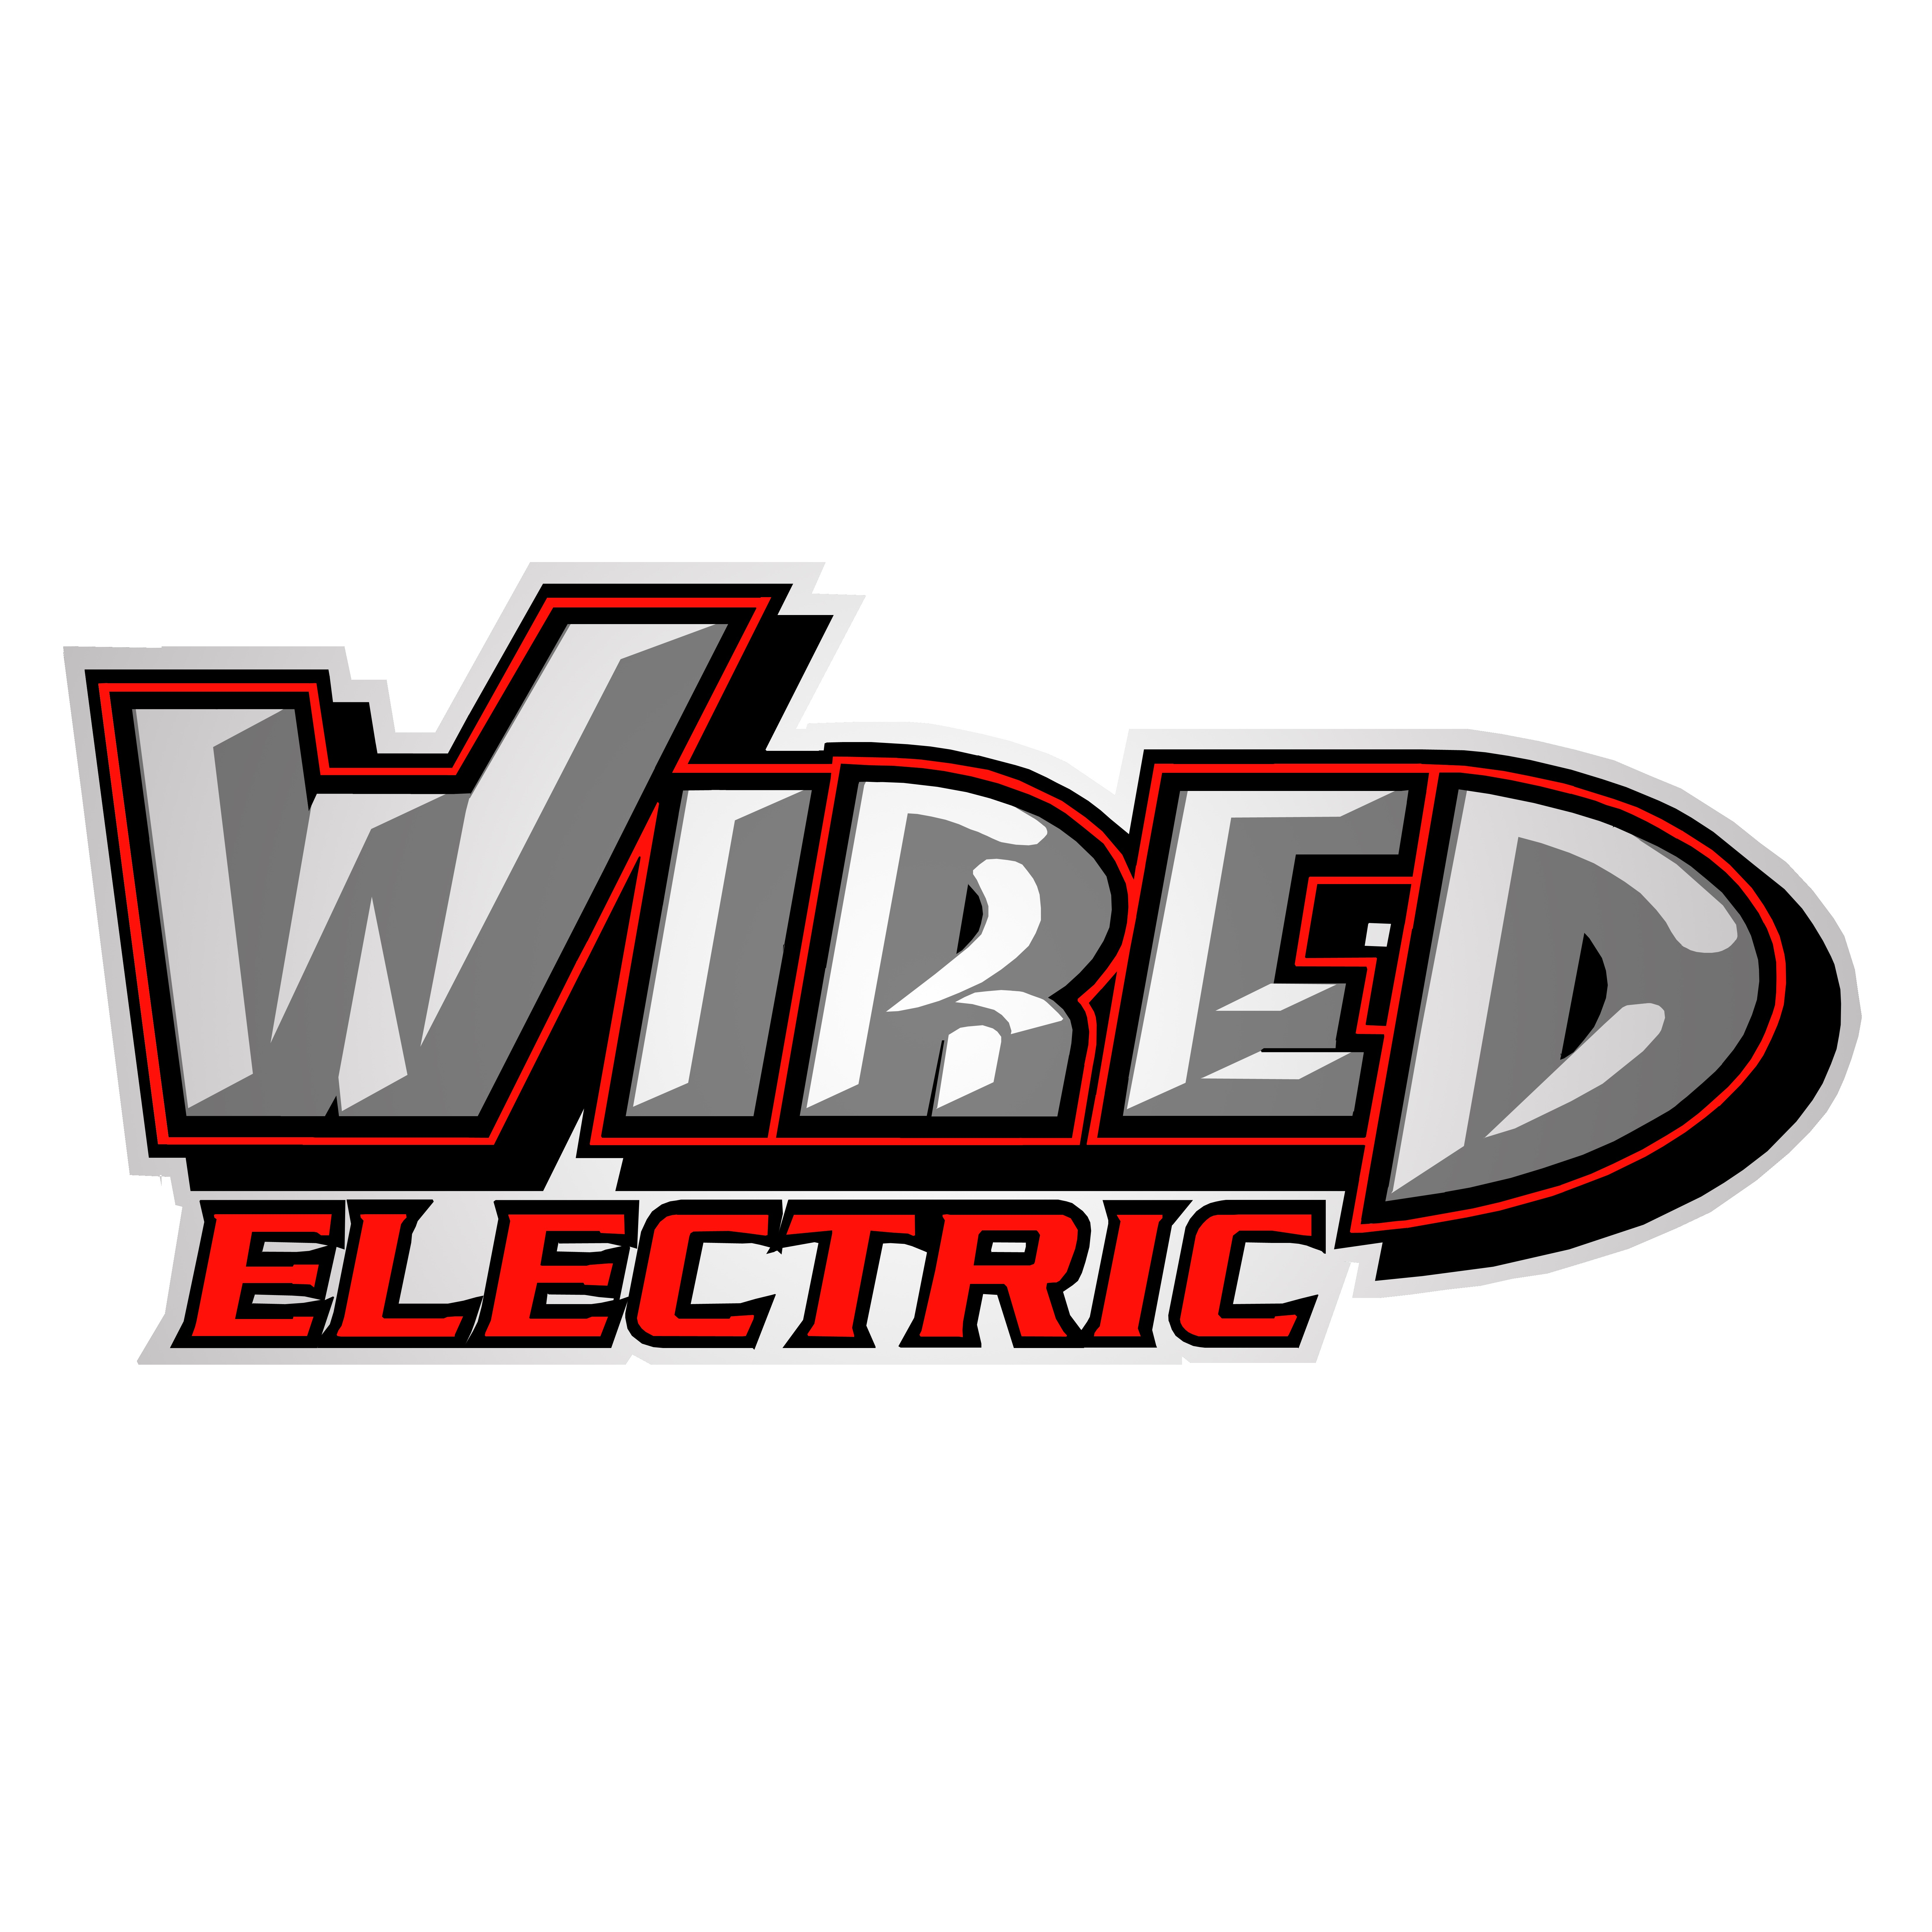 Wired Electric Logo